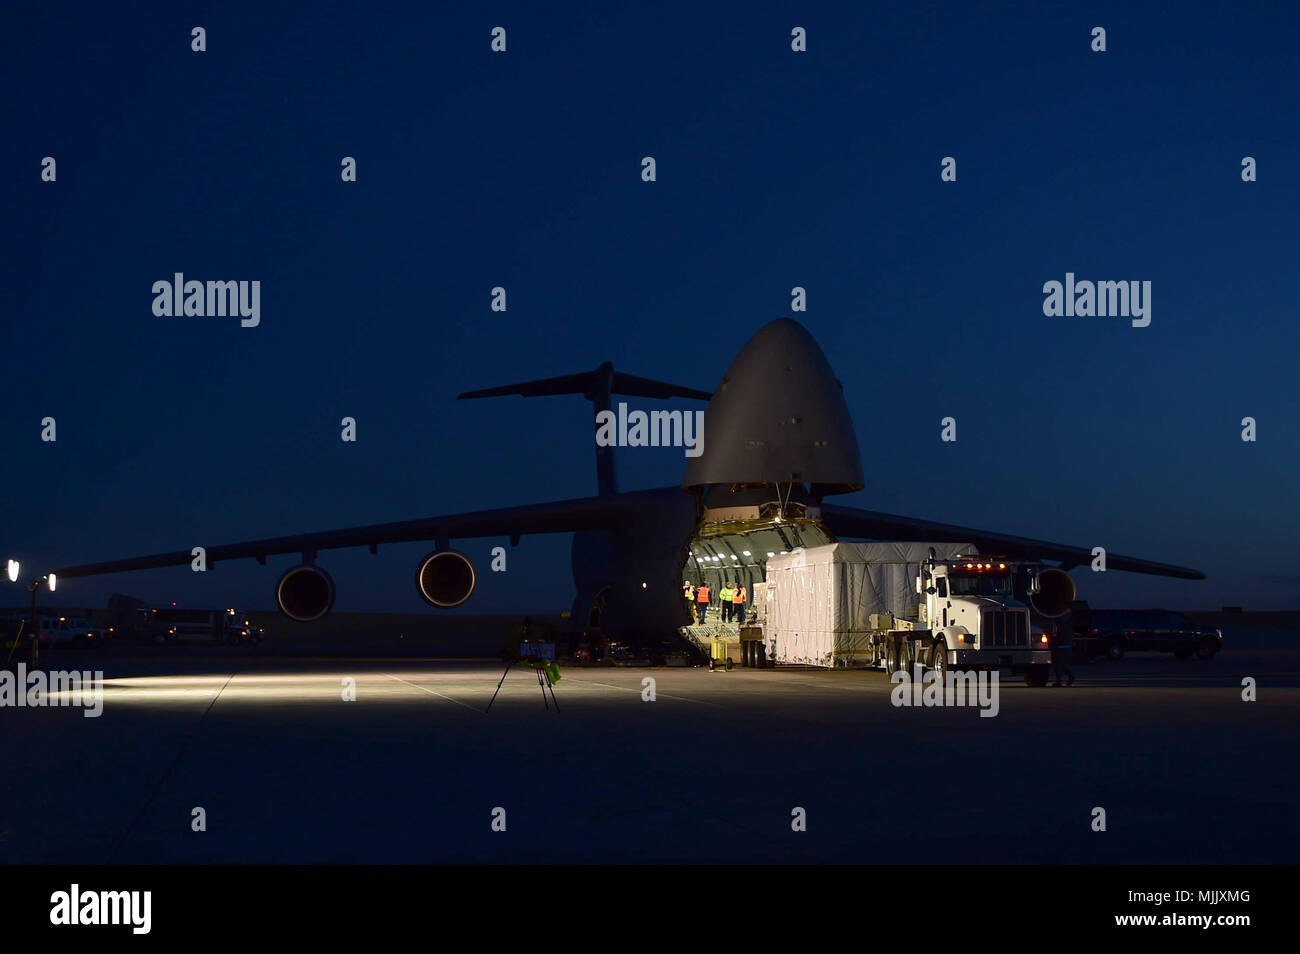 Several units from around the U.S. Air Force alongside members of Lockheed Martin came together to coordinate the loading of the Geostationary Operational Environmental Satellite – R Series into a C-5 Galaxy aircraft Dec. 4, 2017, on Buckley Air Force Base, Colorado. The GOES-R Series will join another satellite currently in orbit to better predict weather patterns and phenomena. The C-5 Galaxy is assigned to Travis AFB, California. (U.S. Air Force photo by Senior Airman Luke W. Nowakowski) - Stock Image